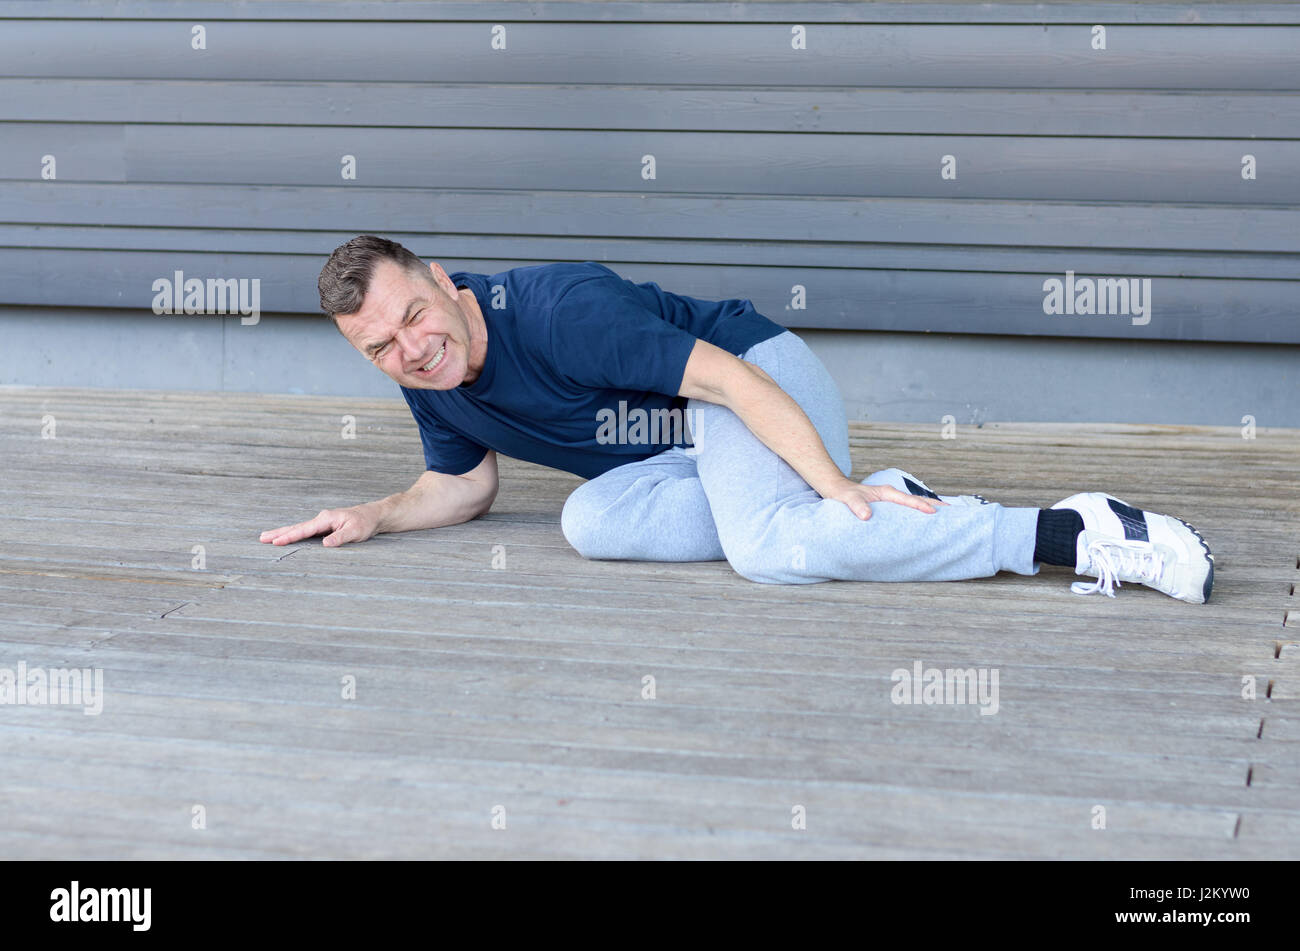 Sporty middle-aged man with muscle cramps in his calf lying on the floor clutching his leg and grimacing in pain - Stock Image